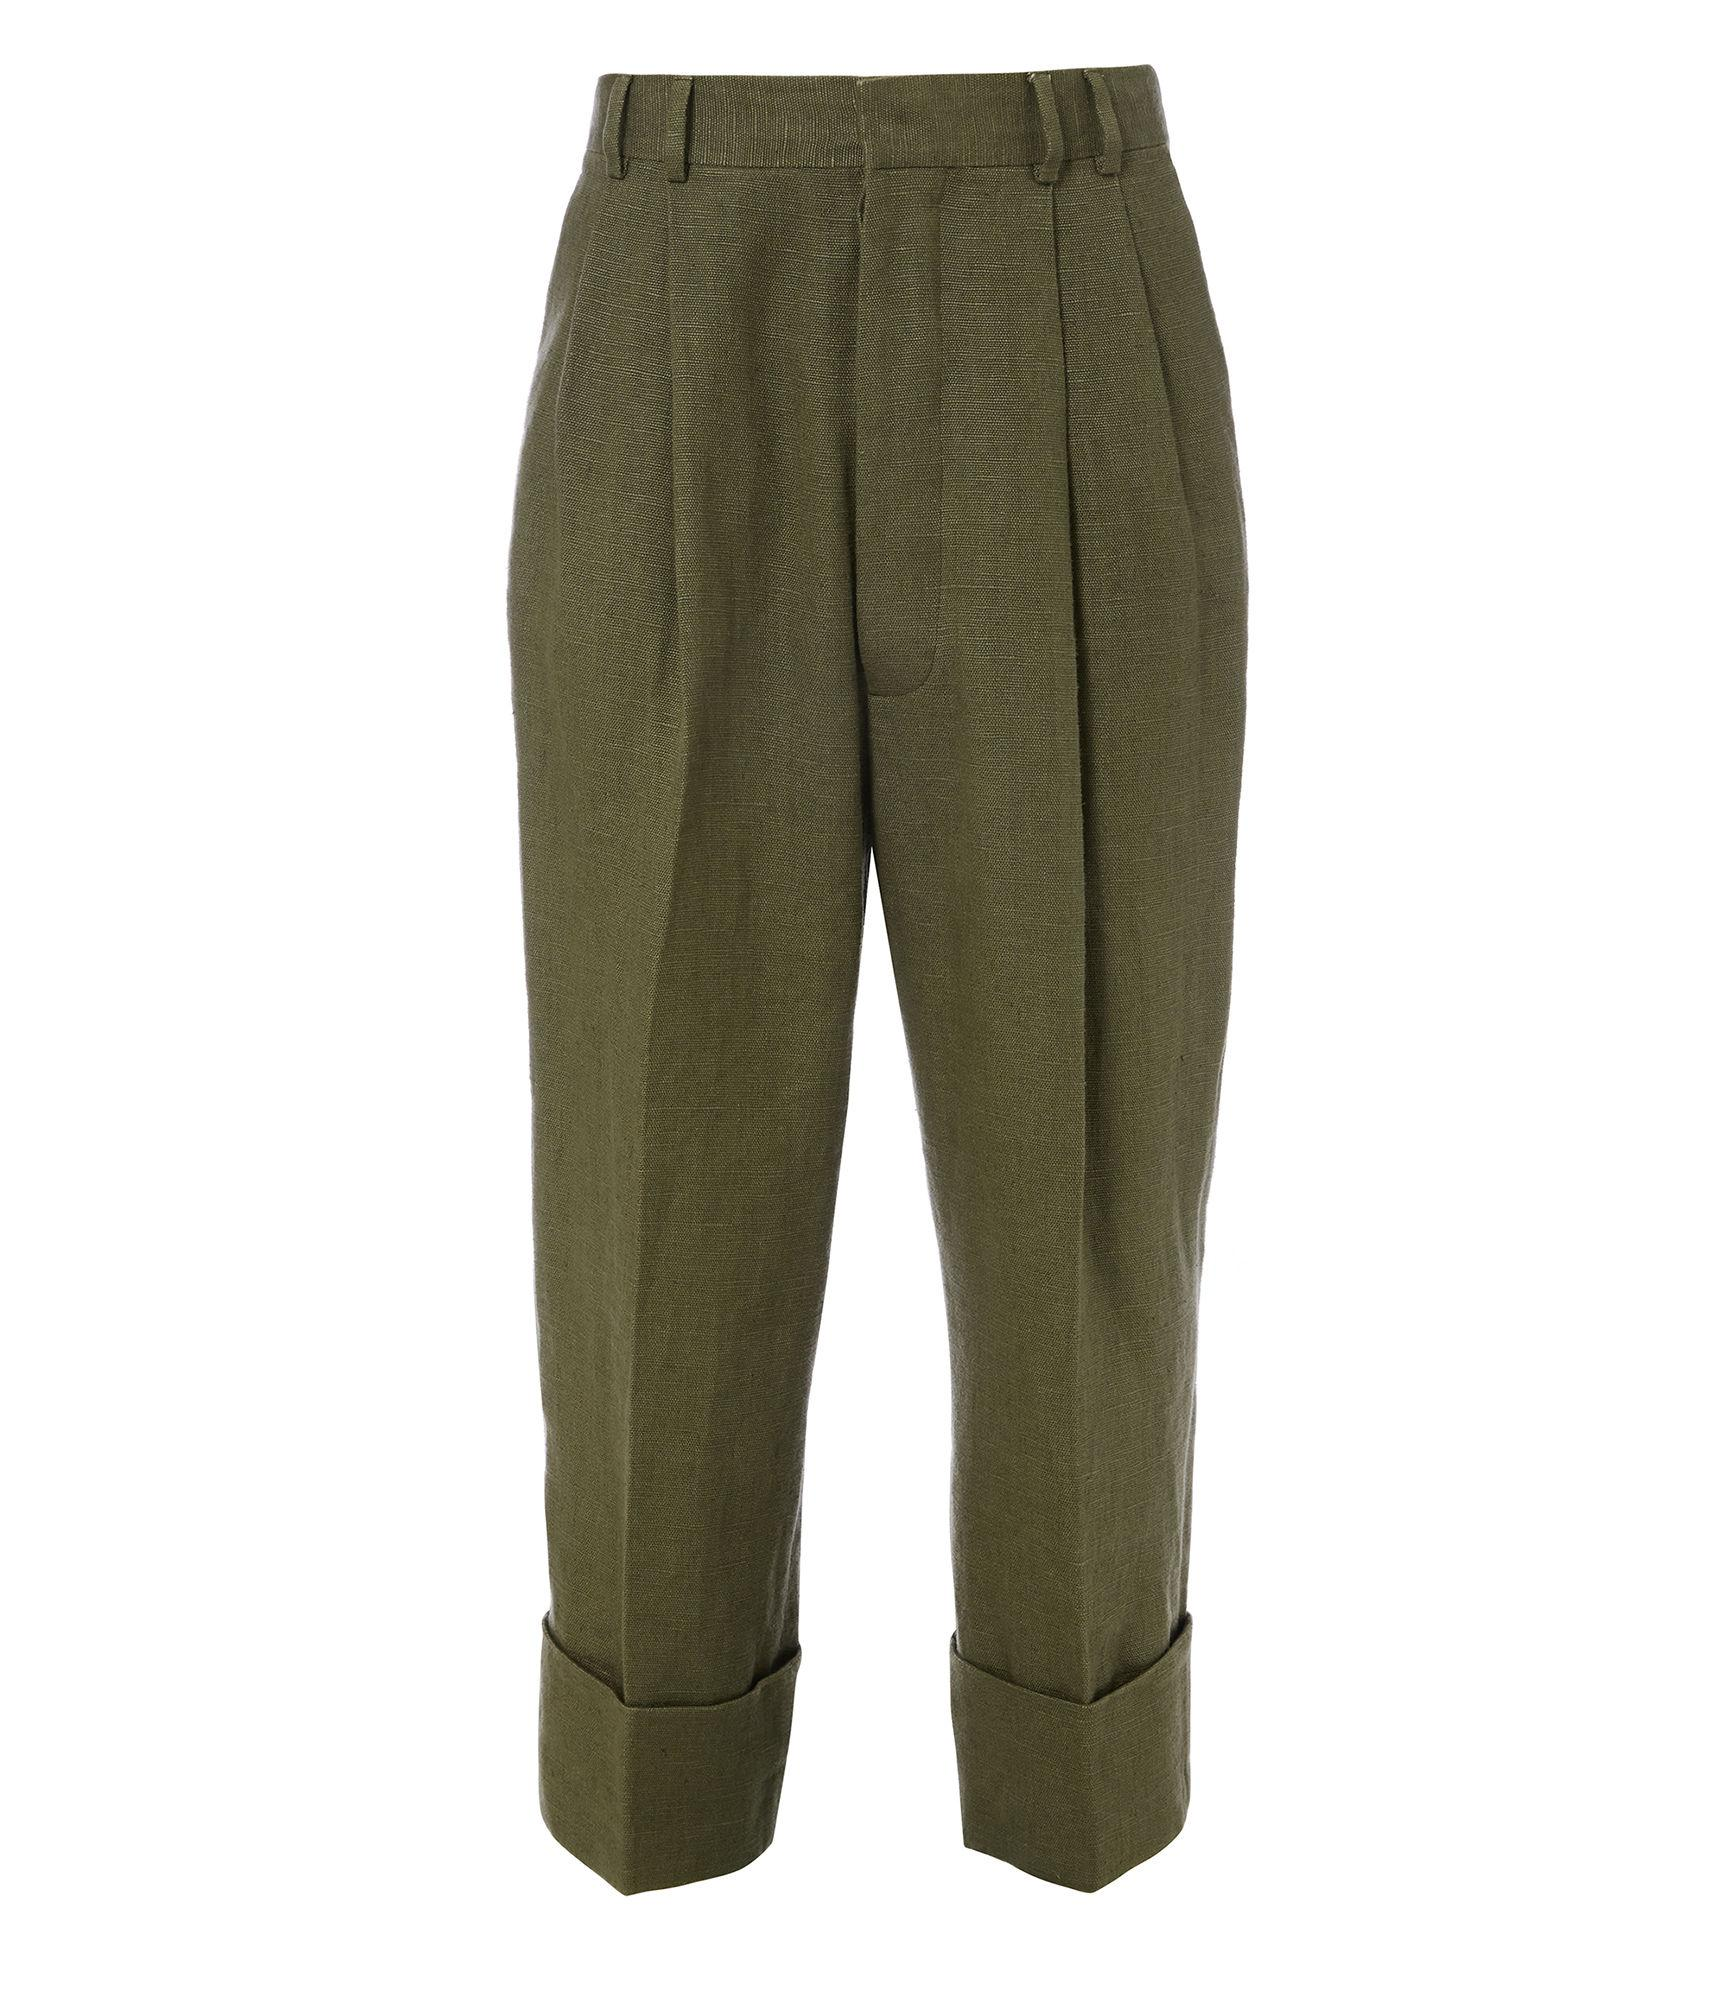 Vivienne Westwood Gable Trousers Olive Green